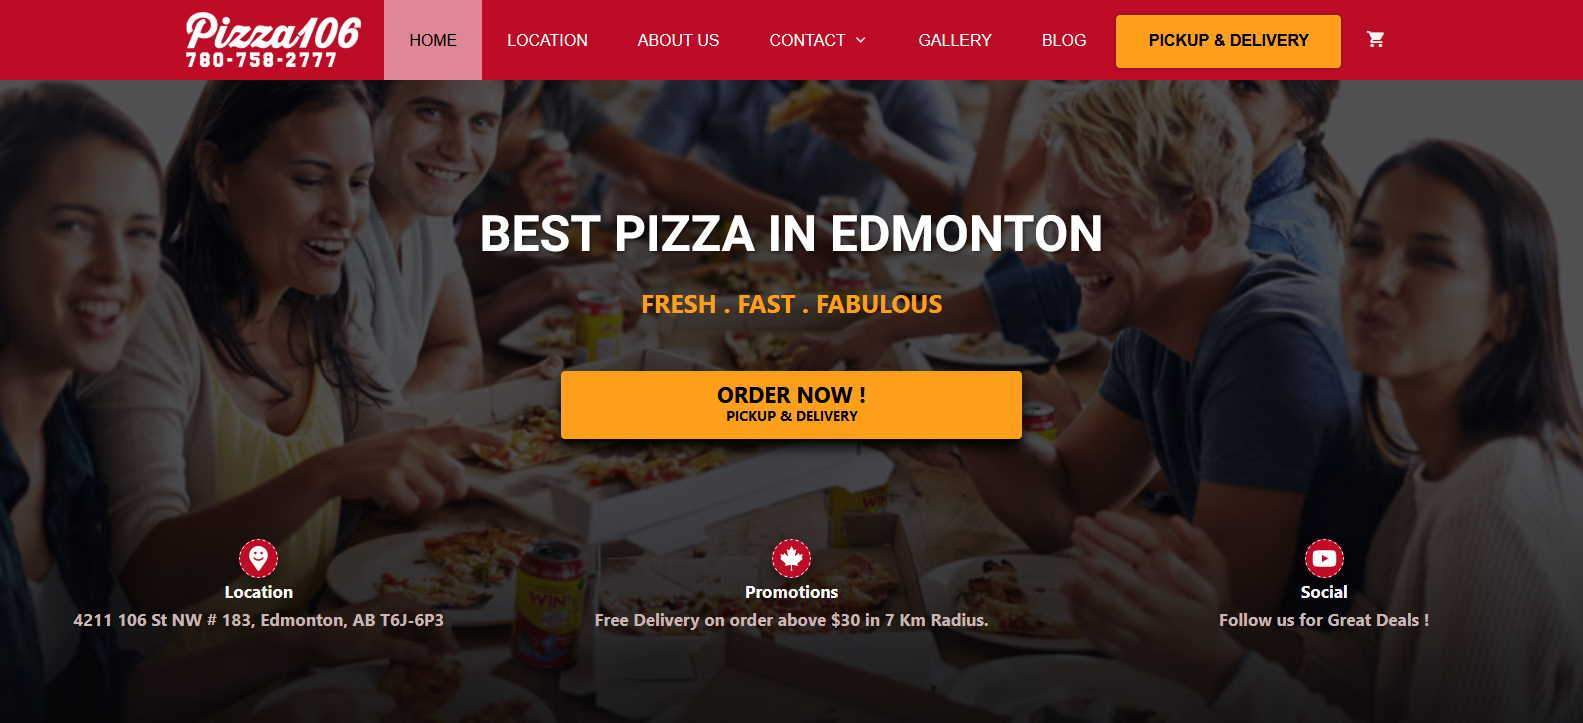 pizza106 case study